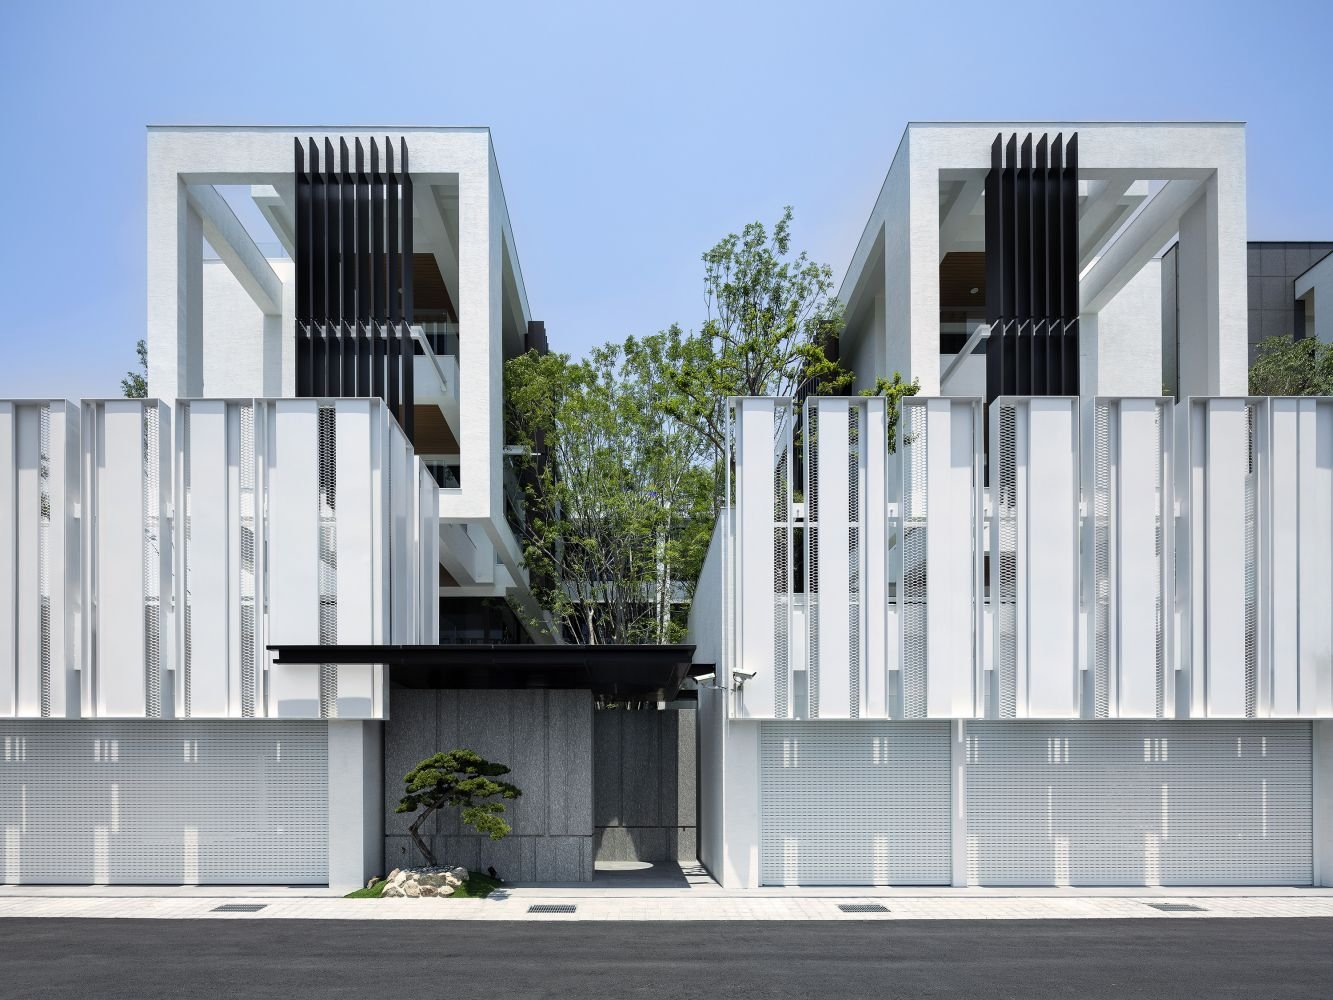 Multiple vertical metallic pillars blend in with the green environment. Moooten Studio/ Qimin Wu